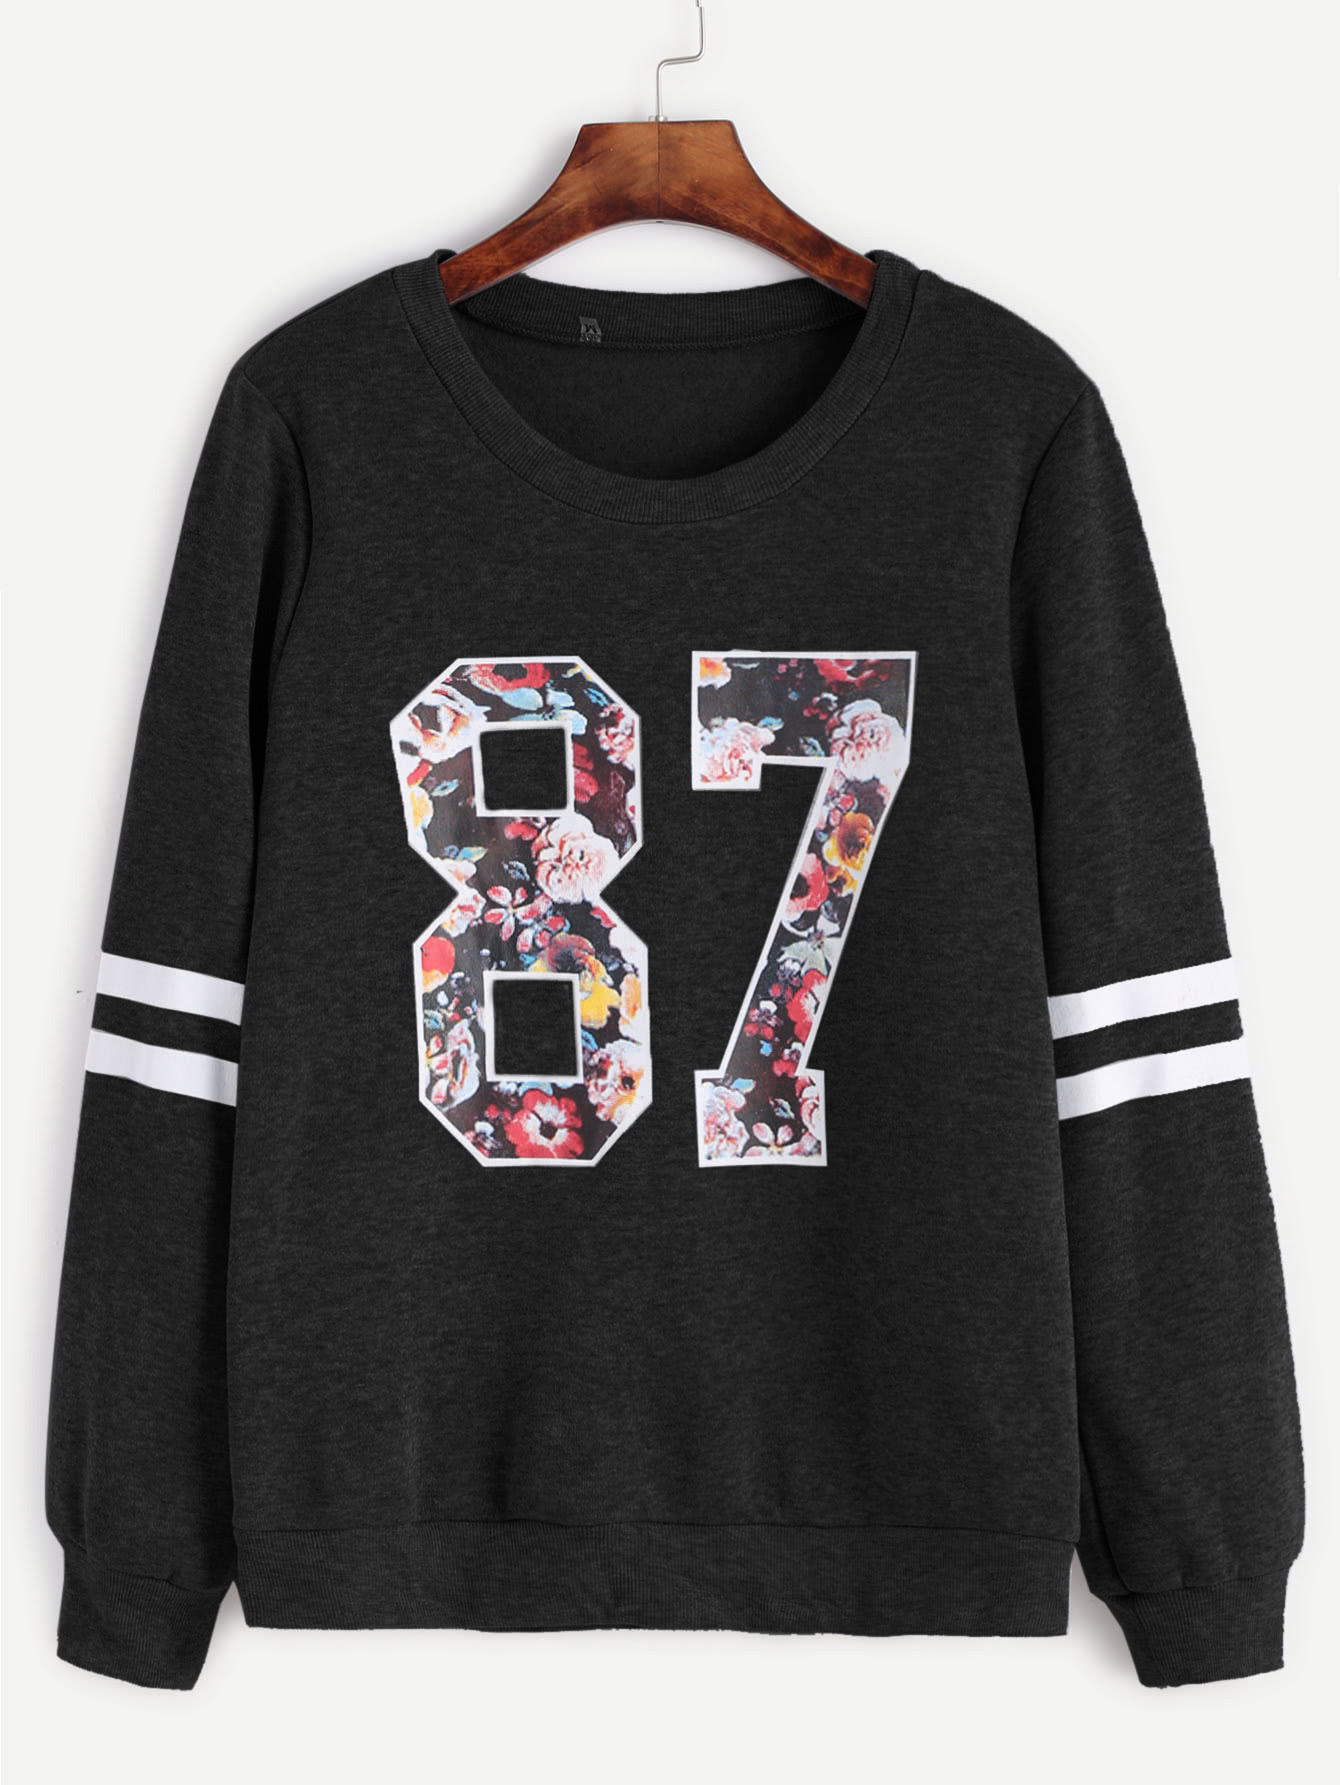 Varsity Print Stripe Sleeve Sweatshirt crew neck graphic print long sleeve varsity stripe sweatshirt